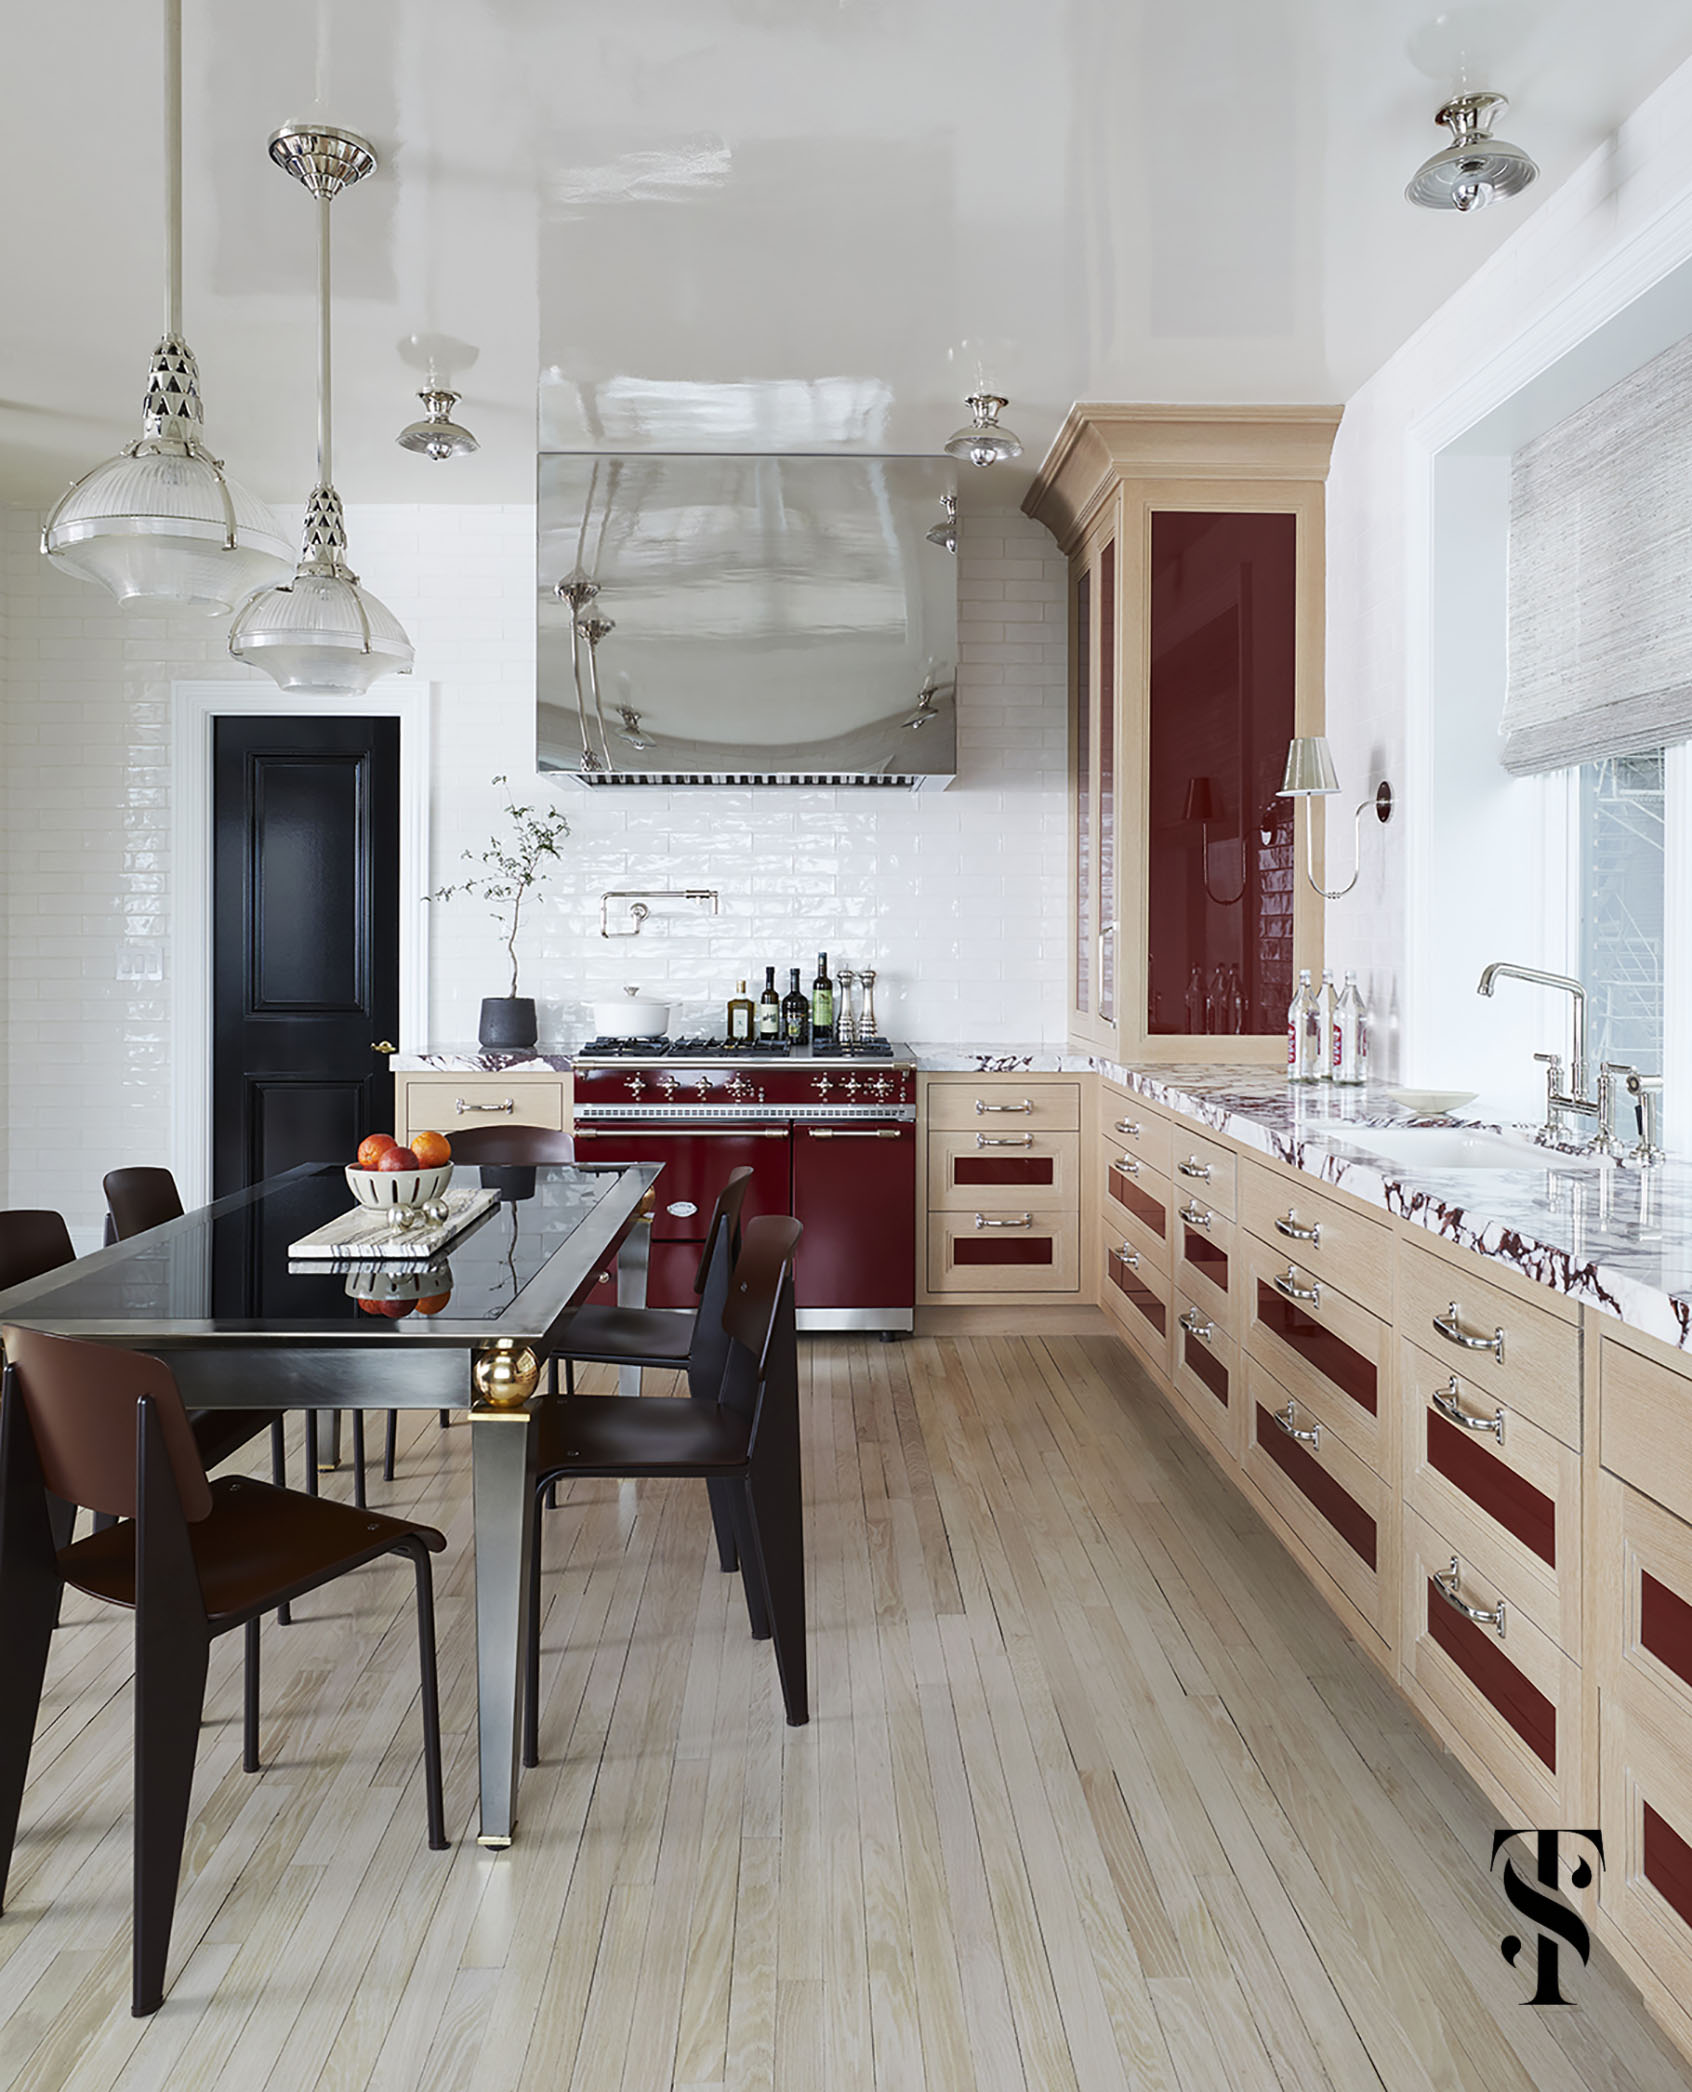 glossy details from a mirror-finish polished stainless steel hood to high-gloss cabinetry inserts in burgundy red & even a lacquered ceiling give this kitchen by interior designer Summer Thornton a water-like reflective quality, emulating the waves of Lake Michigan that it overlooks